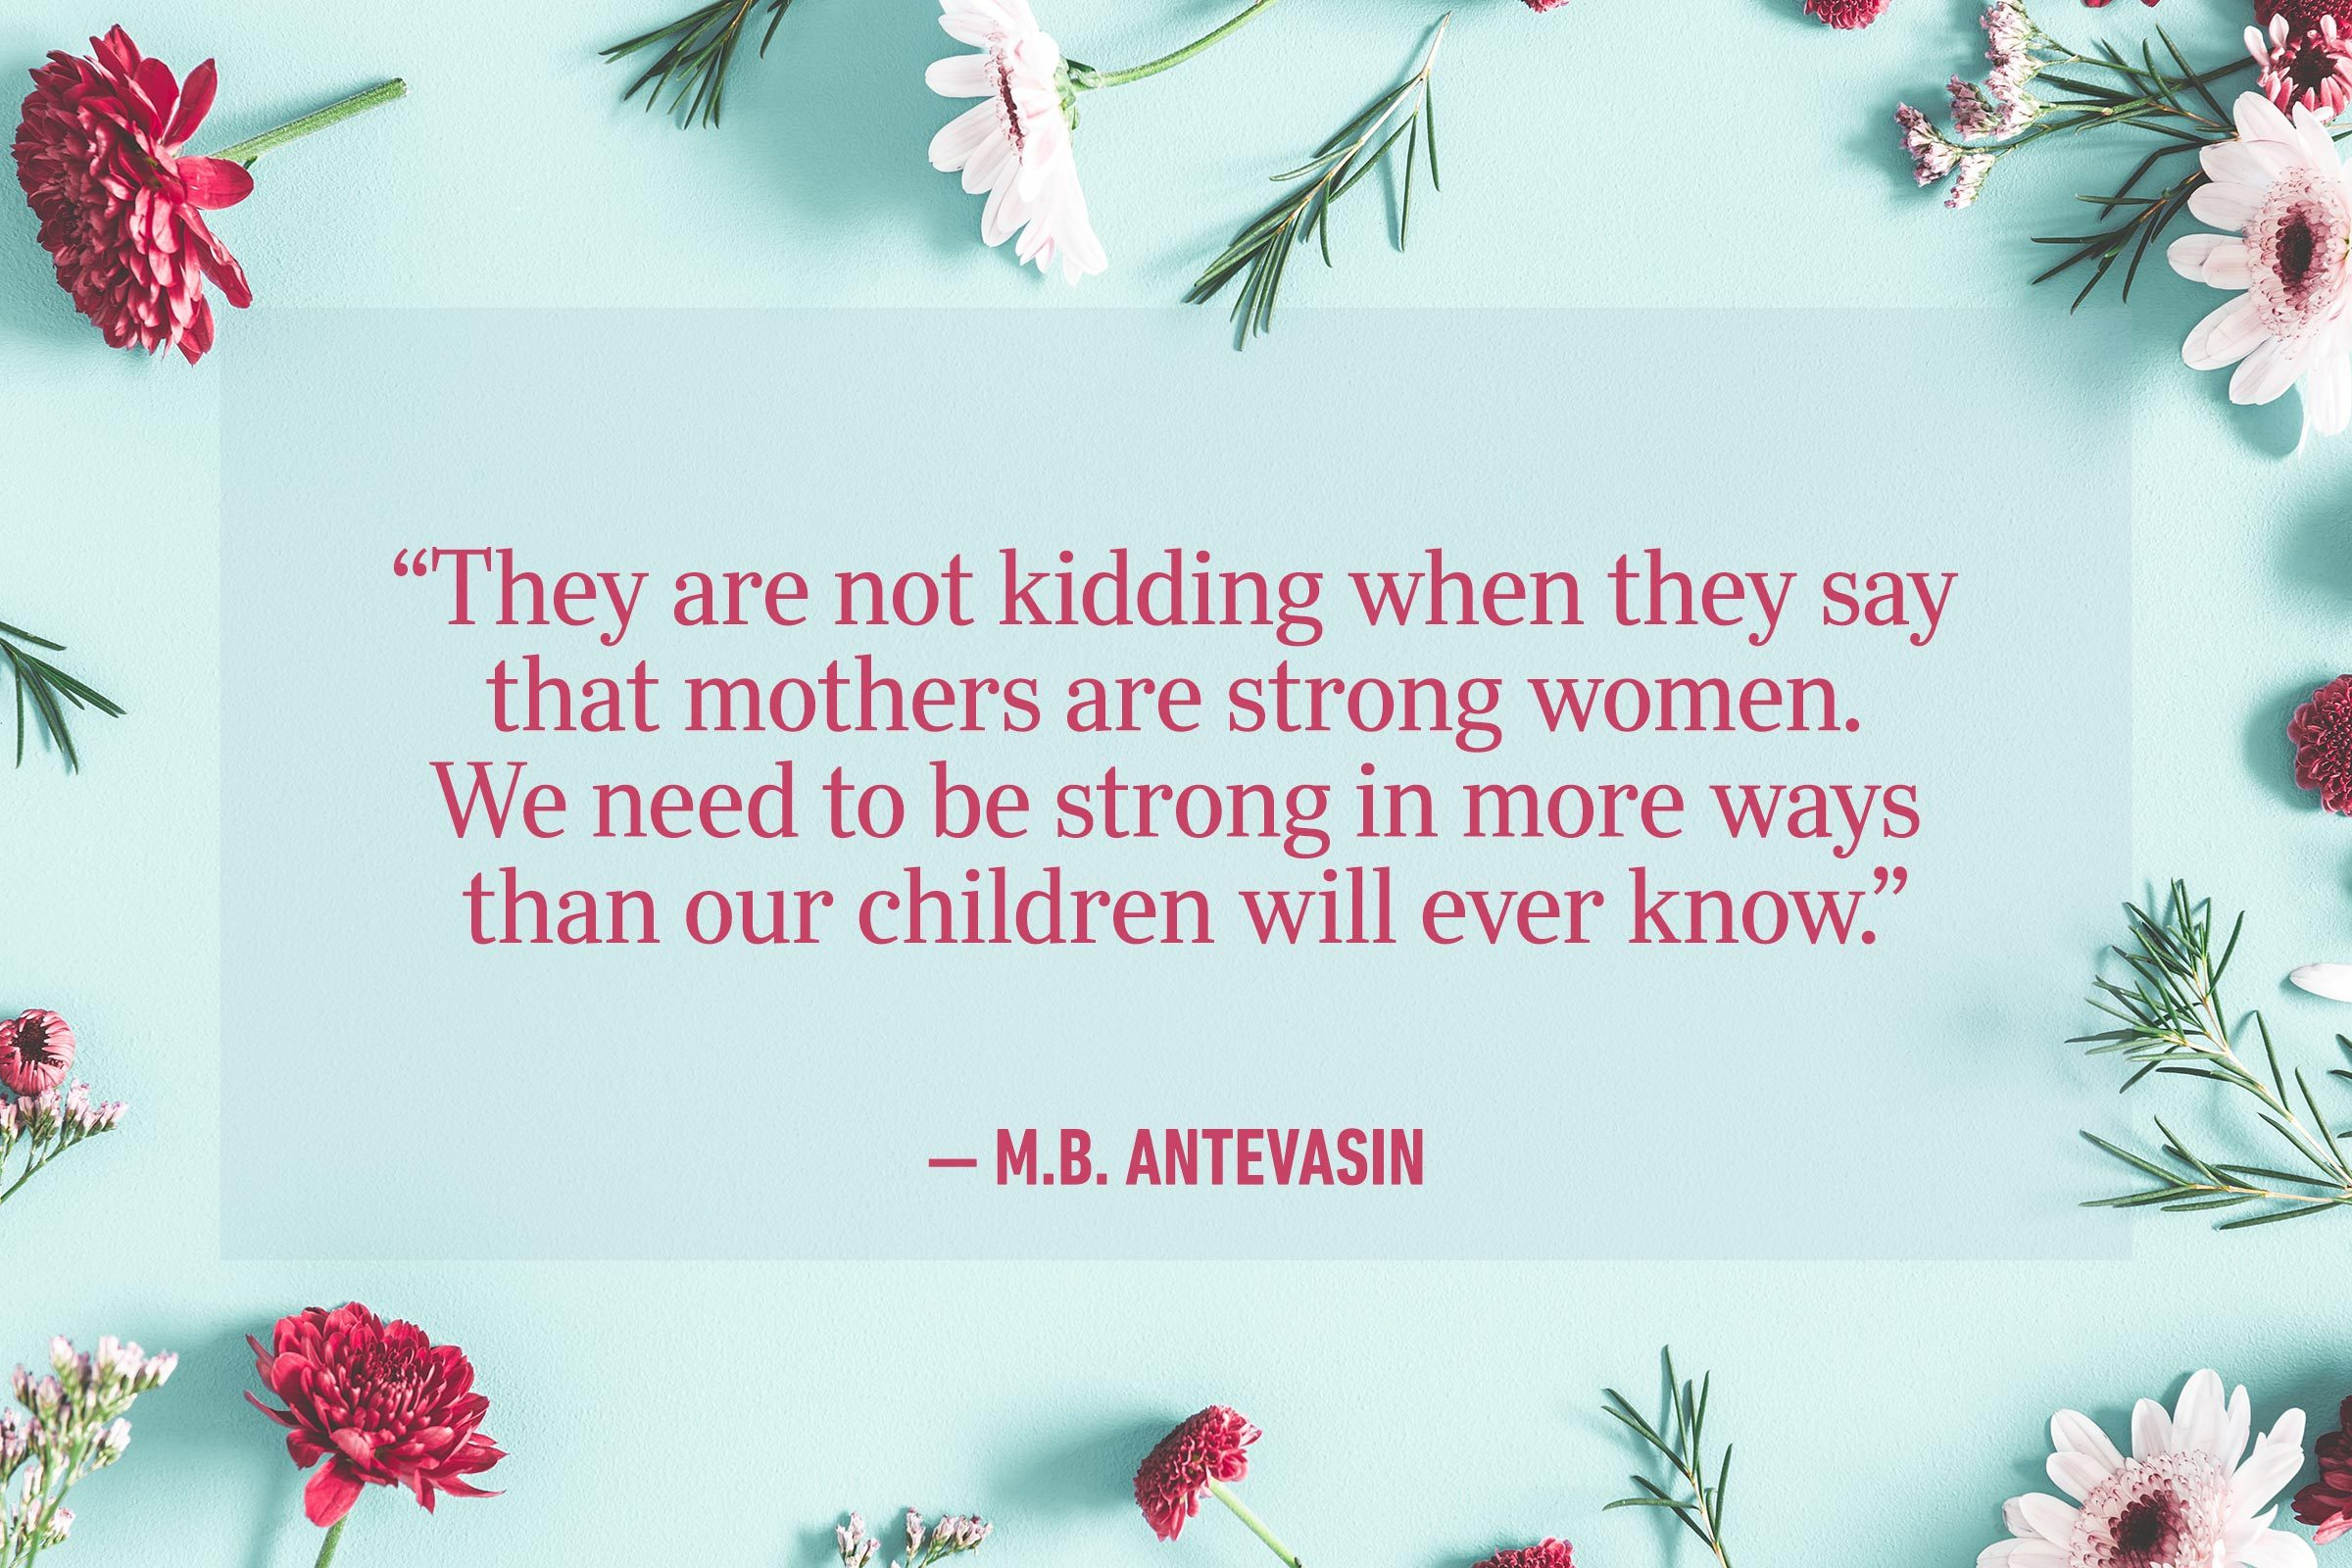 """""""They are not kidding when they say that mothers are strong women. We need to be strong in more ways than our children will ever know."""" —M.B. Antevasin"""